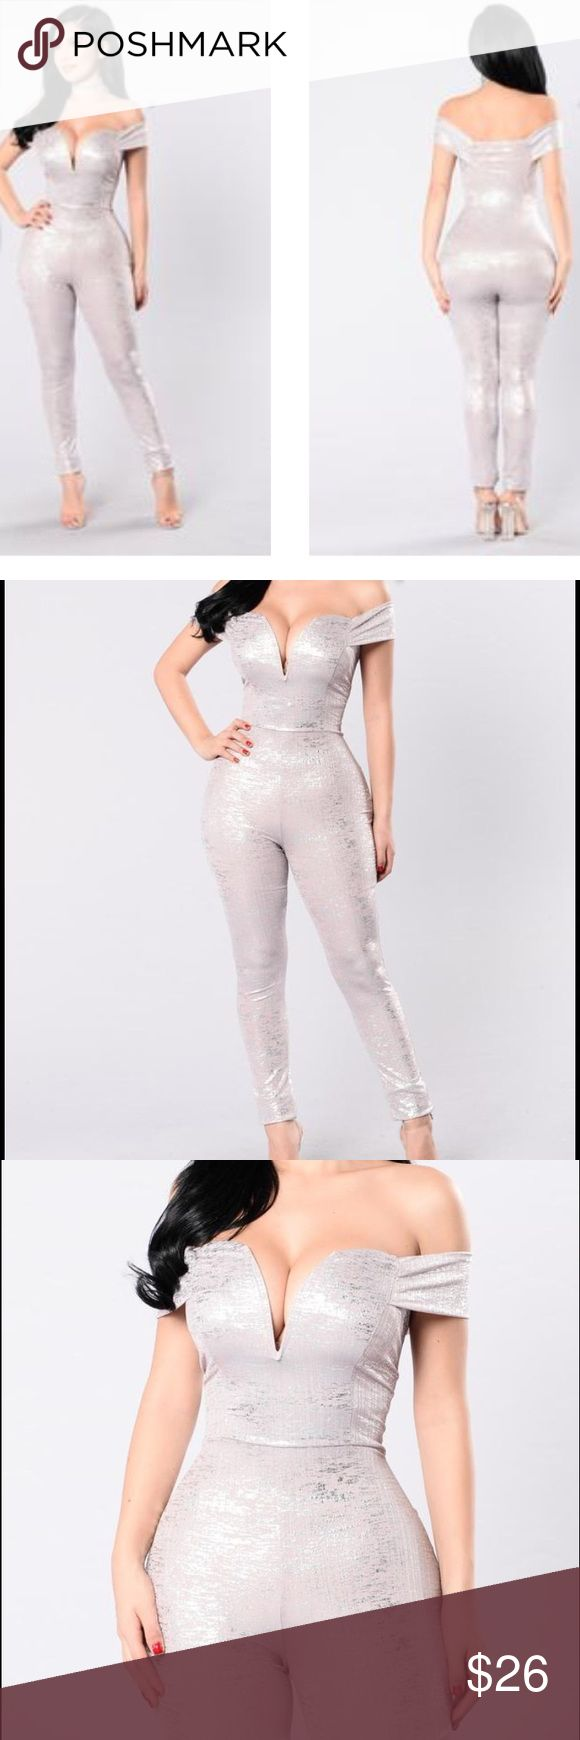 Fashion Nova Just me and my baby Jumpsuit Silver jumpsuit NWT never worn Fashion Nova Pants Jumpsuits & Rompers